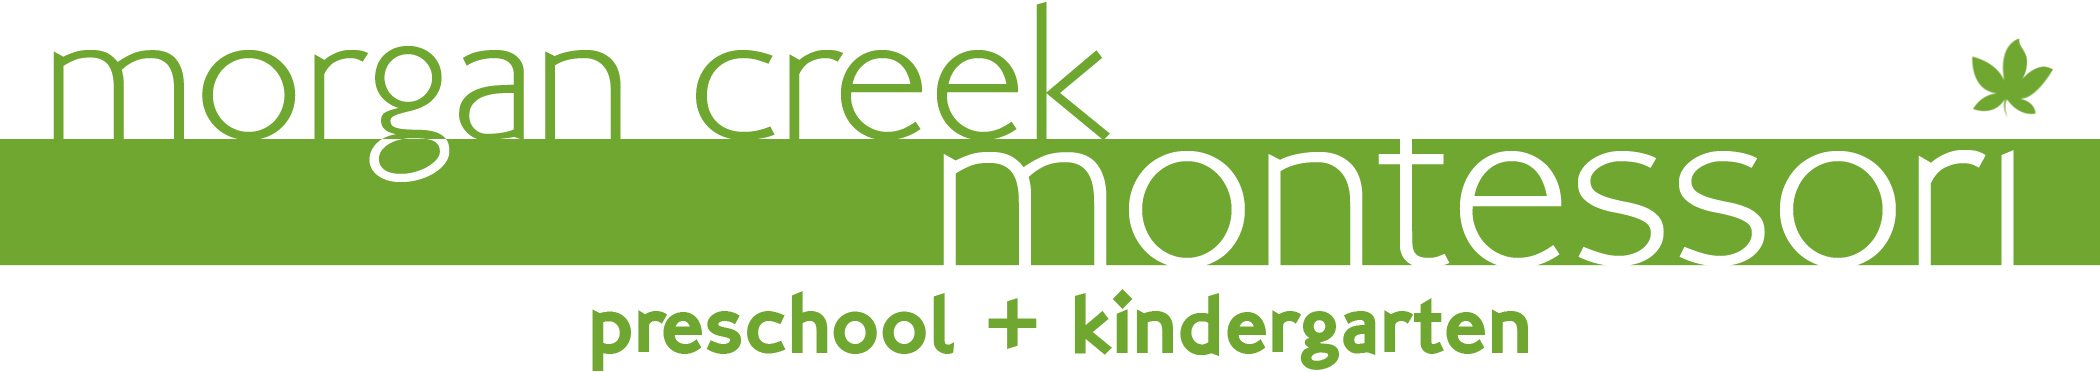 Morgan Creek Montessori